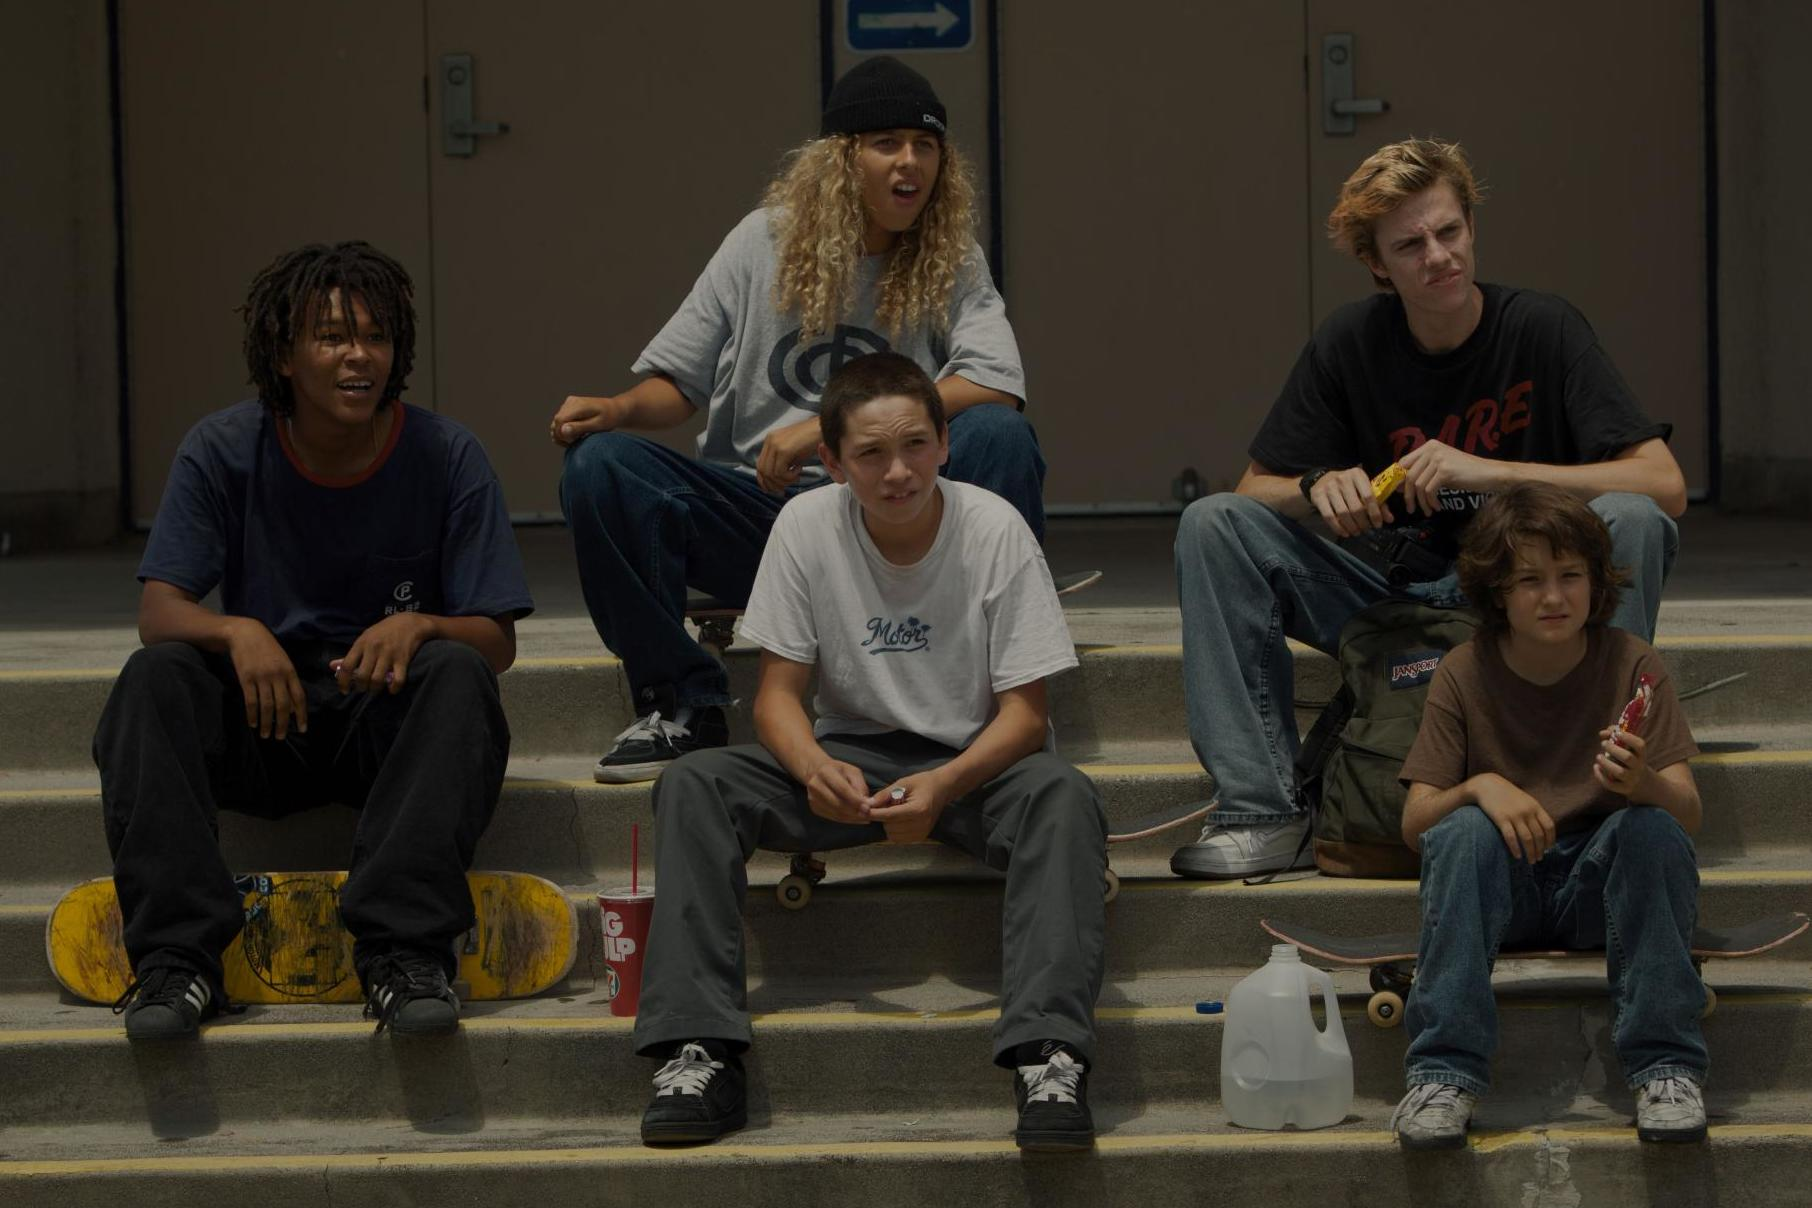 Growing up as a boy hurts, in Jonah Hill's Mid90s